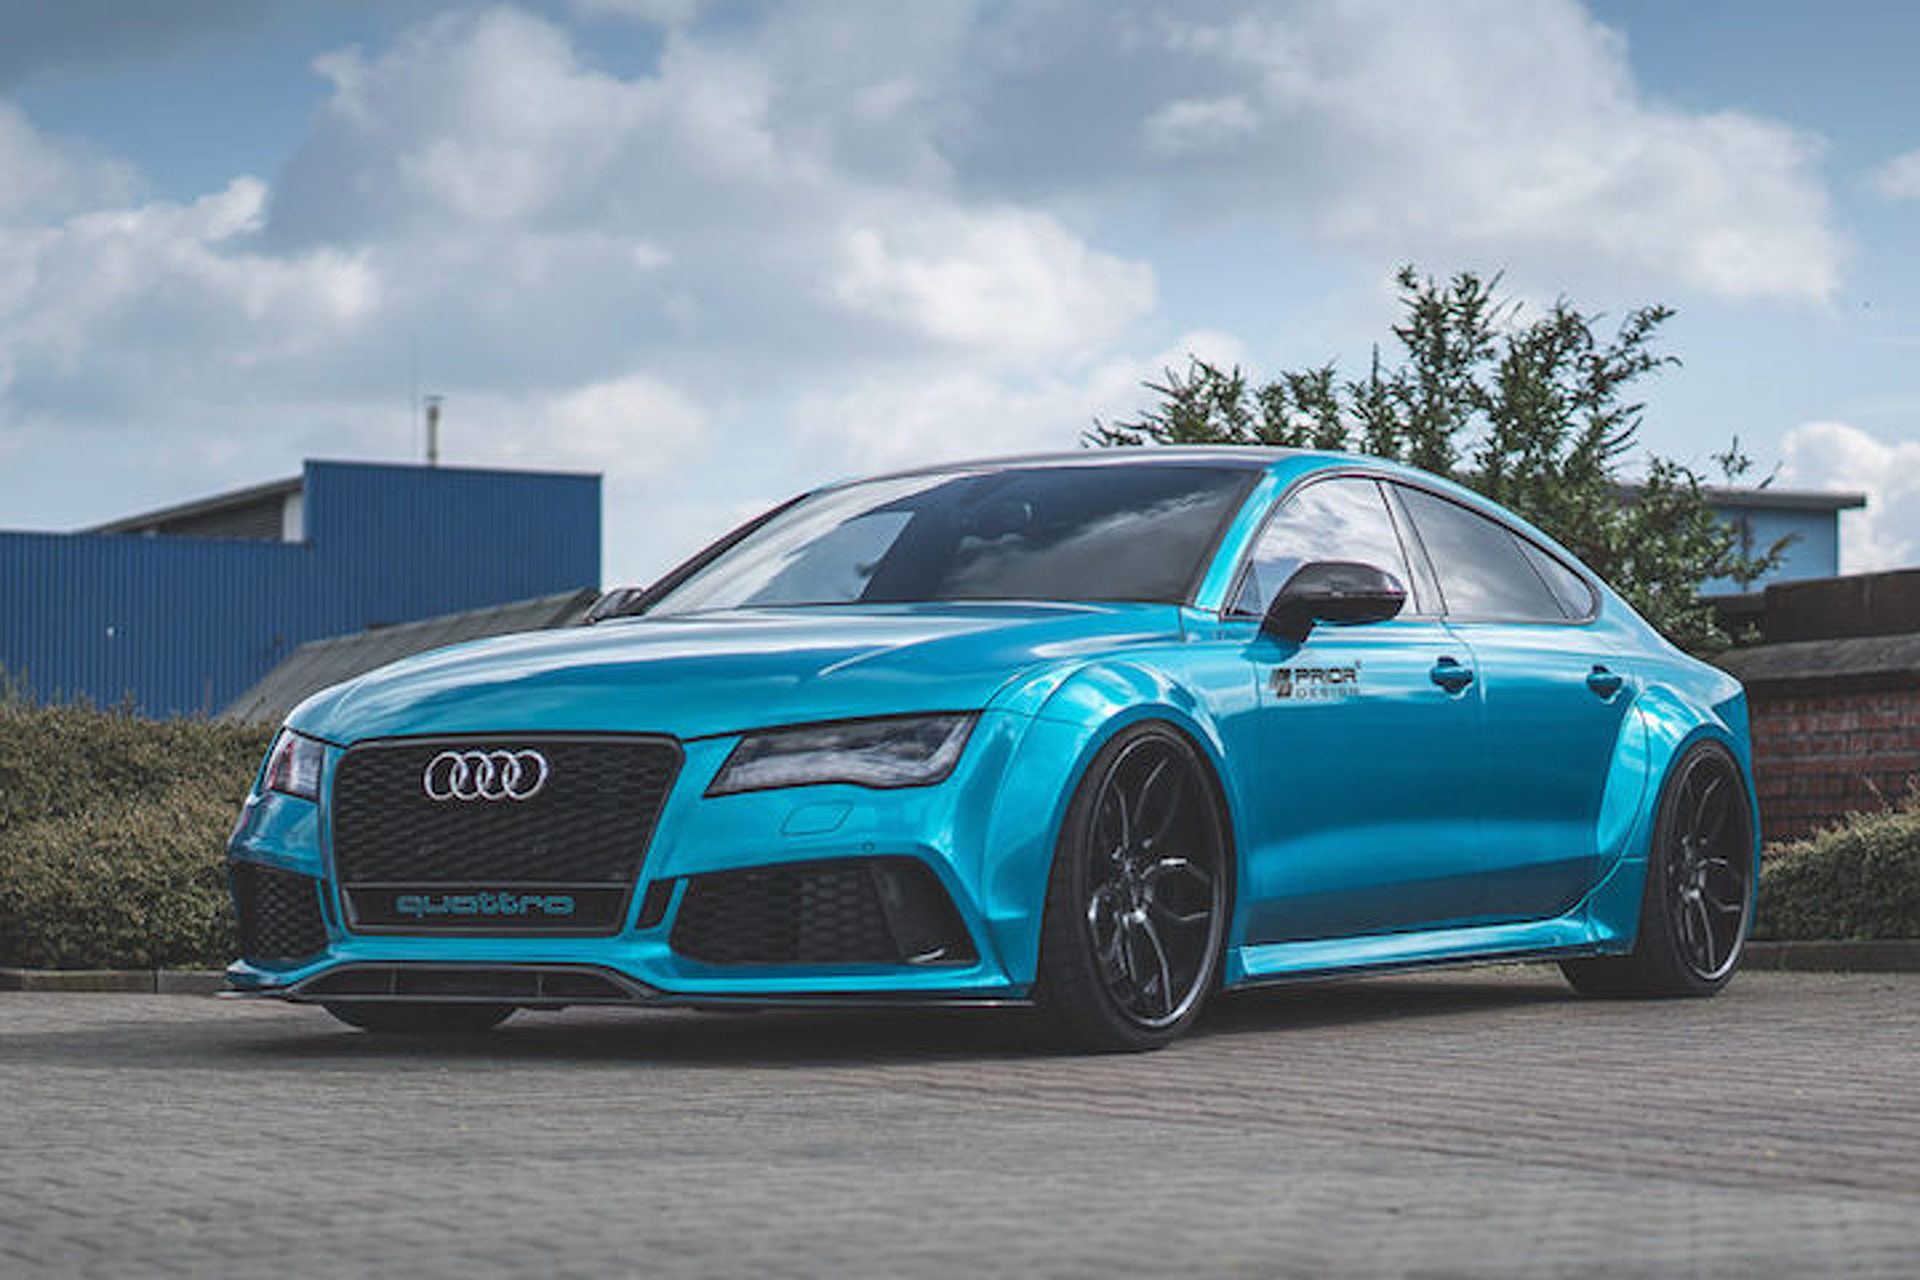 a rs widebody audi magnificent beast is com this photos